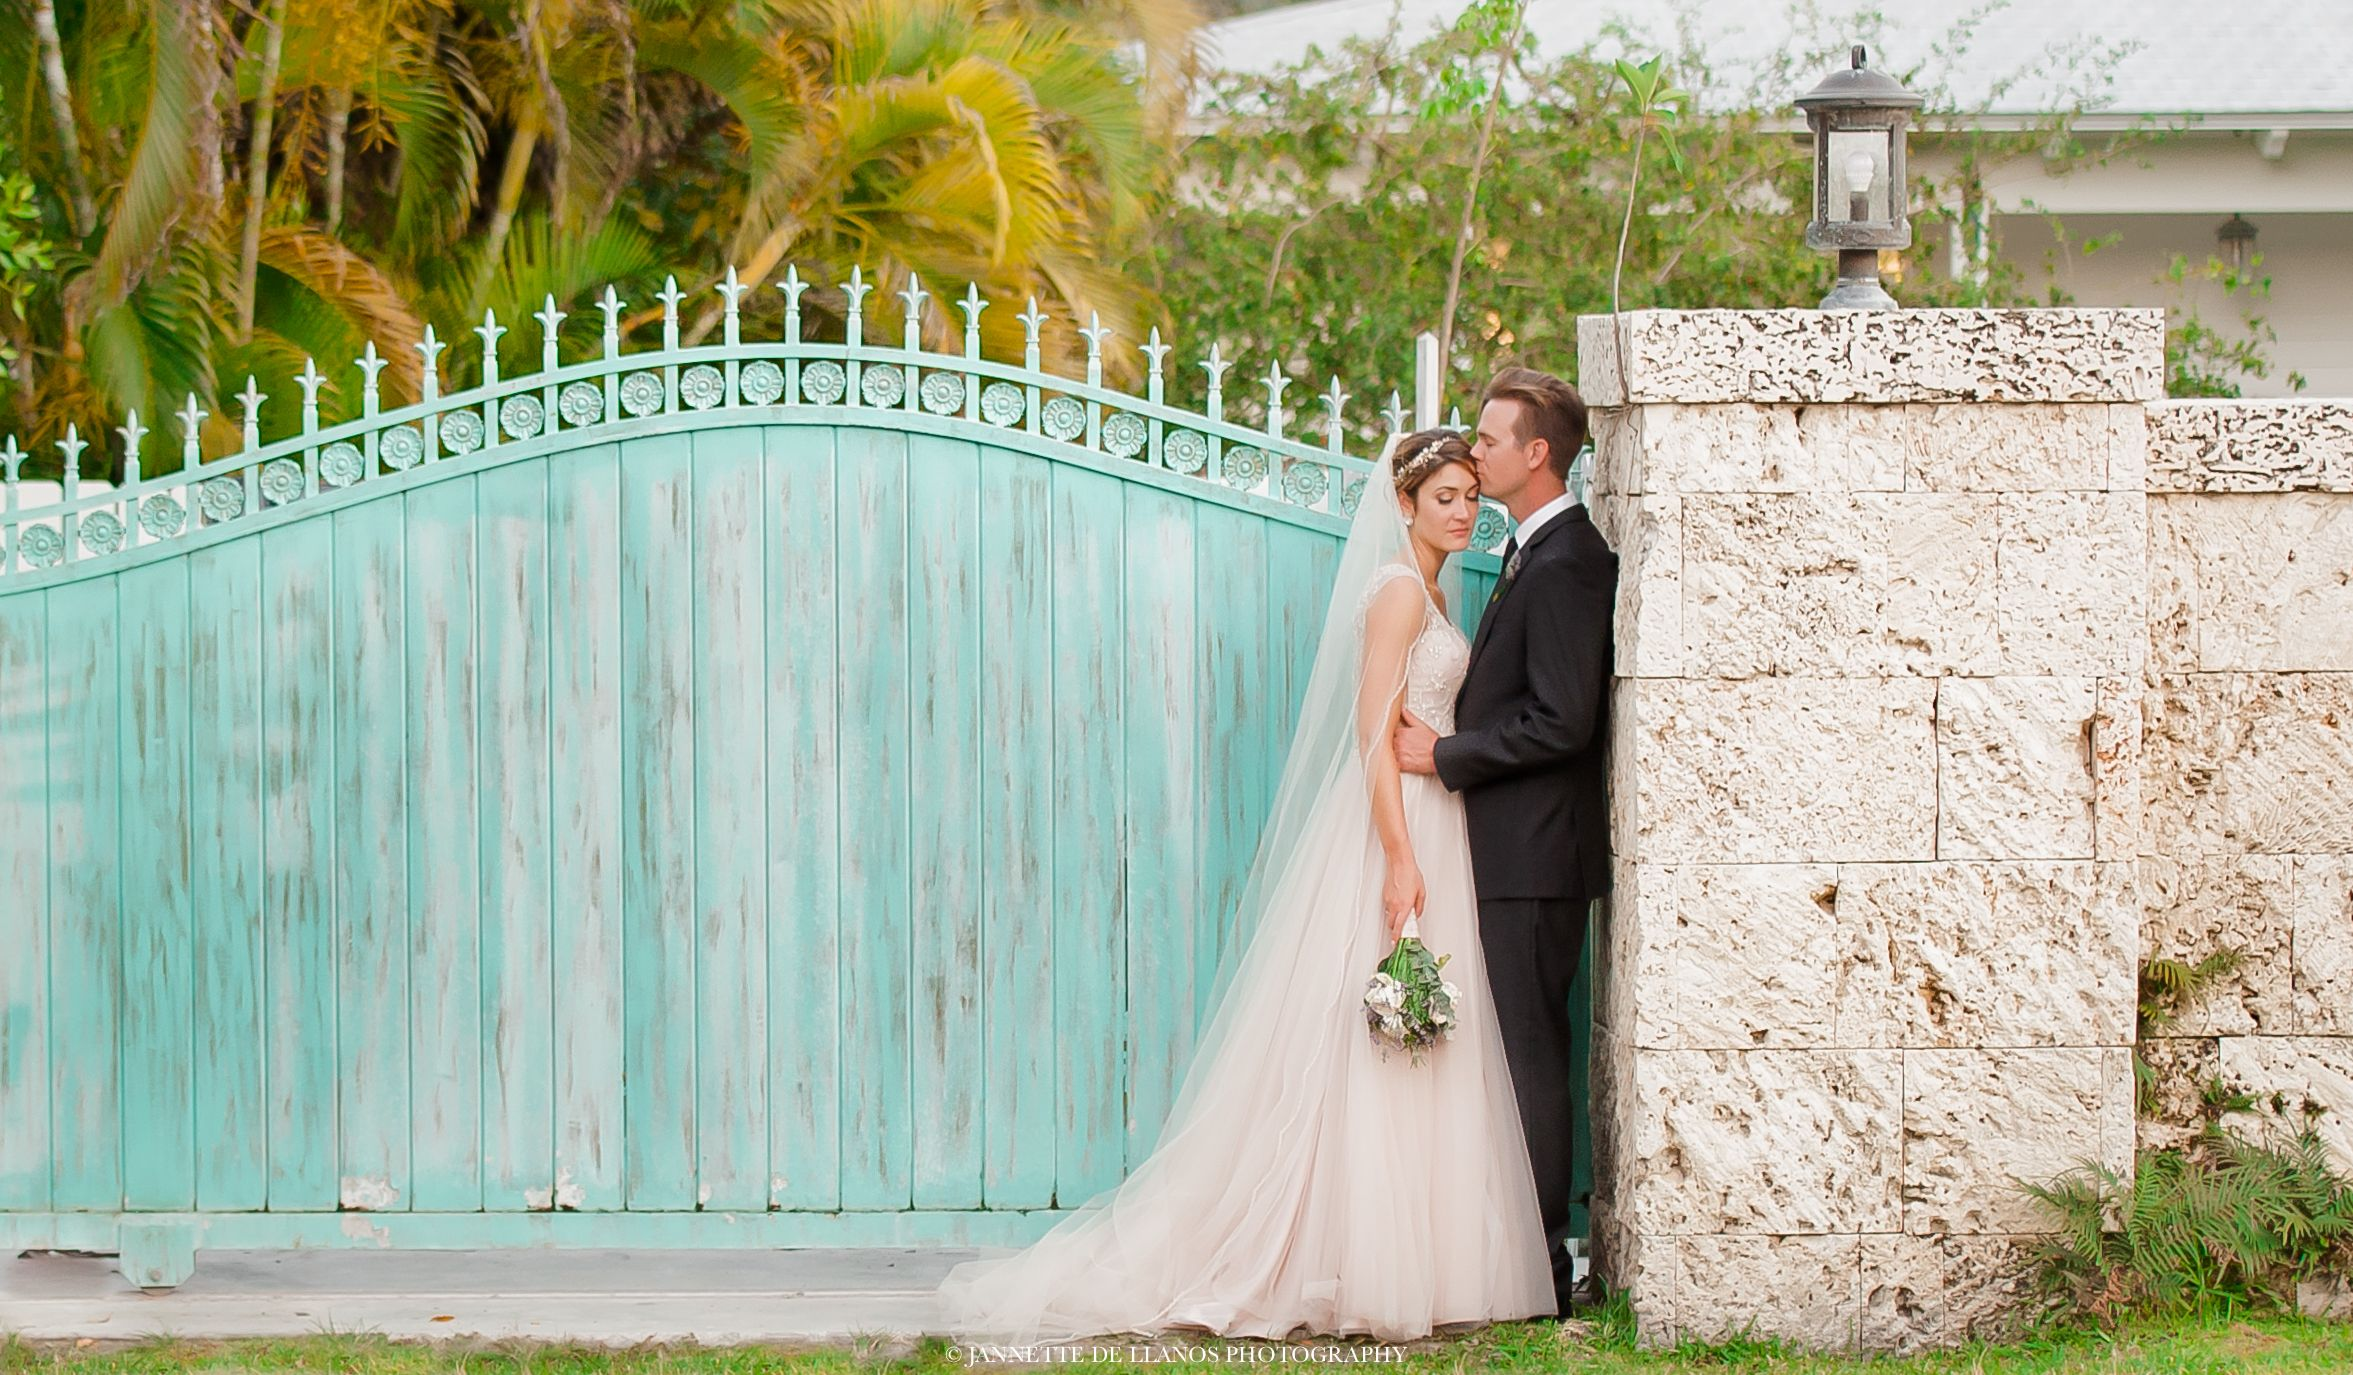 Caribbean wedding dress  Jannette De Llanos Weddings page  destination wedding ideas